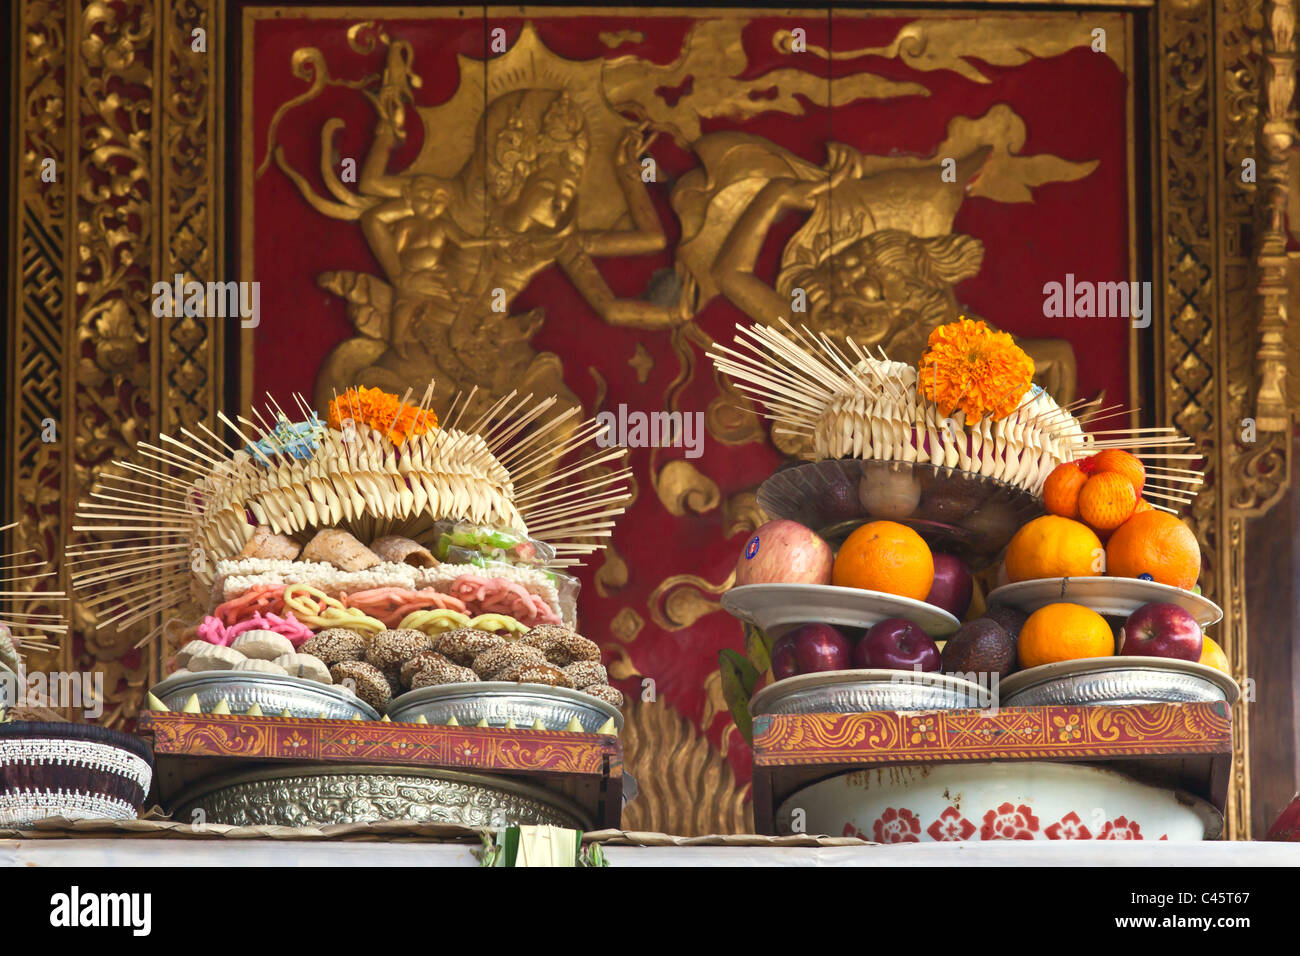 Fruit, sweets and flowers at PURA TAMAN SARASWATI for the GALUNGAN FESTIVAL - UBUD, BALI, INDONESIA - Stock Image